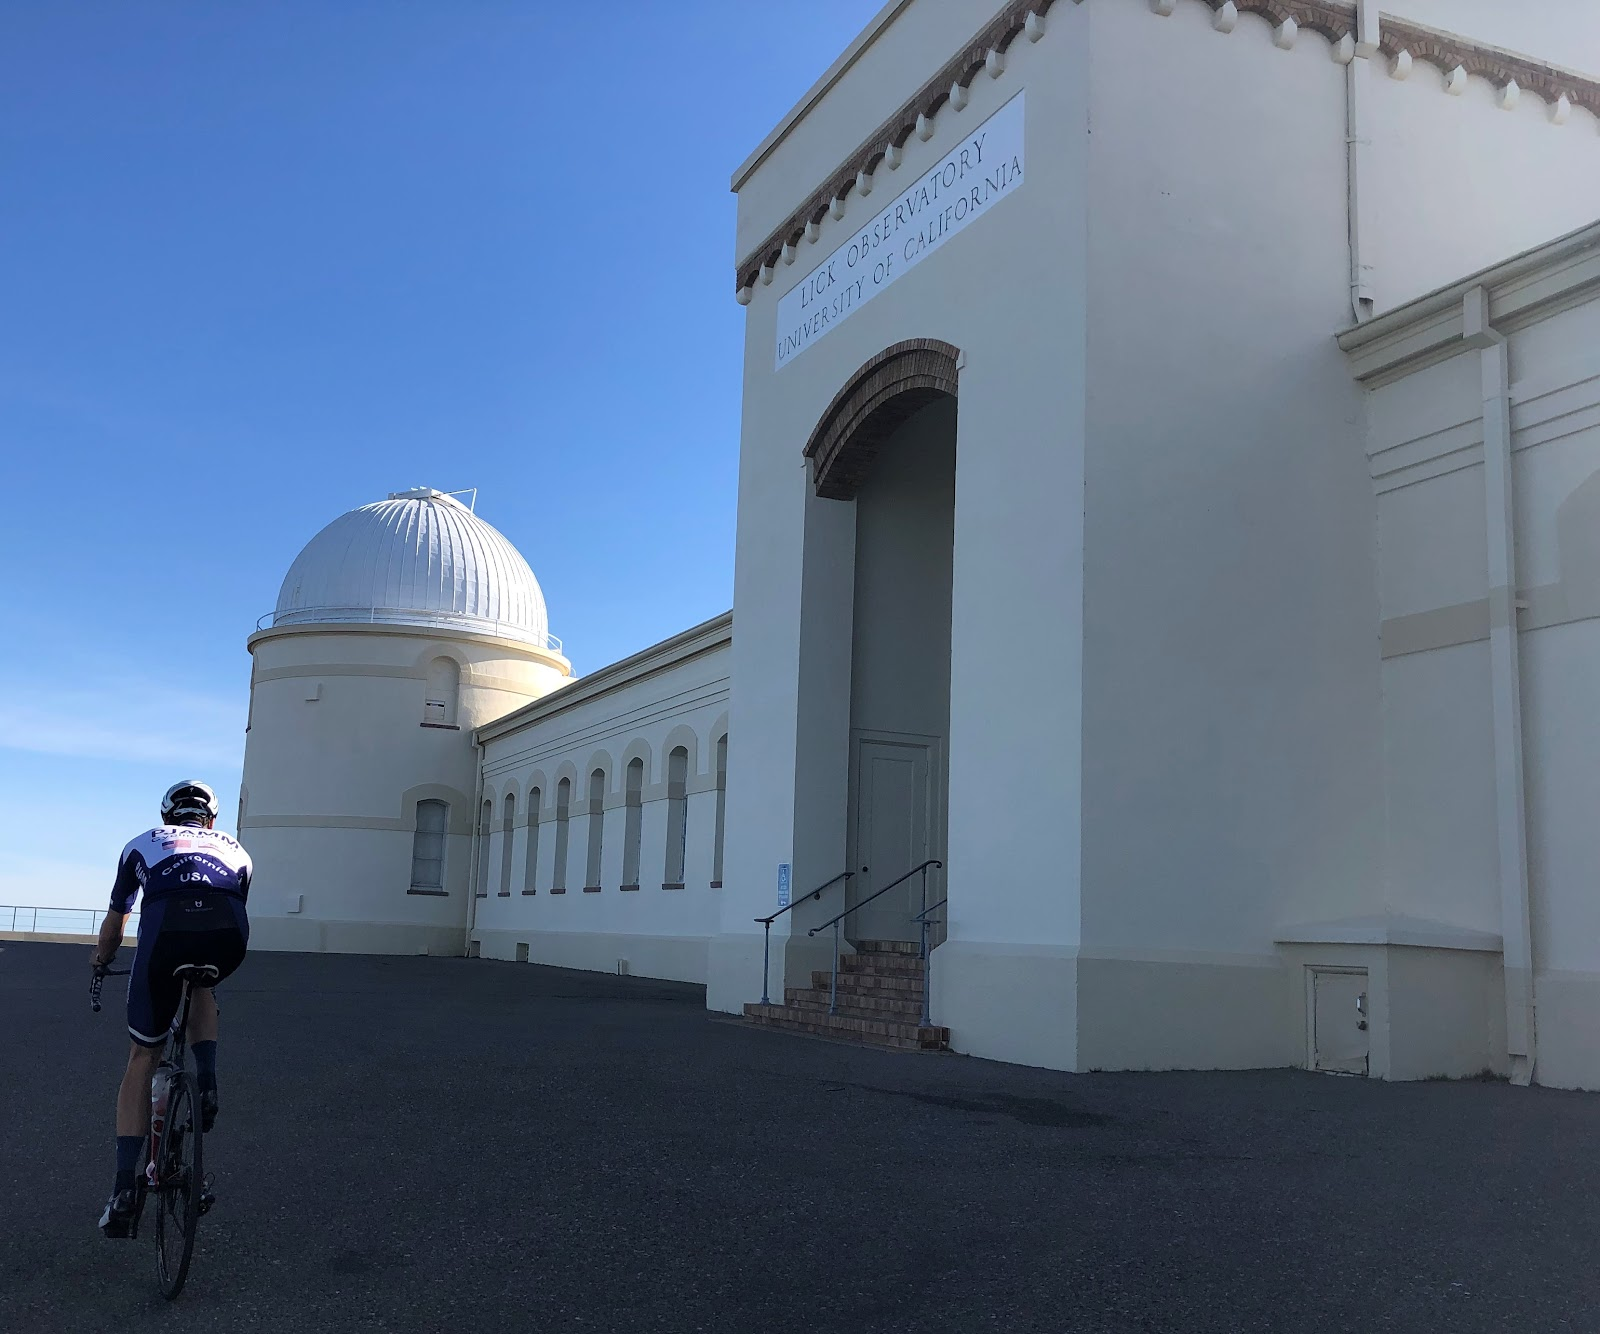 Biking Mt. Hamilton West - Lick Observatory entrance. Cyclist riding past front of Lick Observatory.